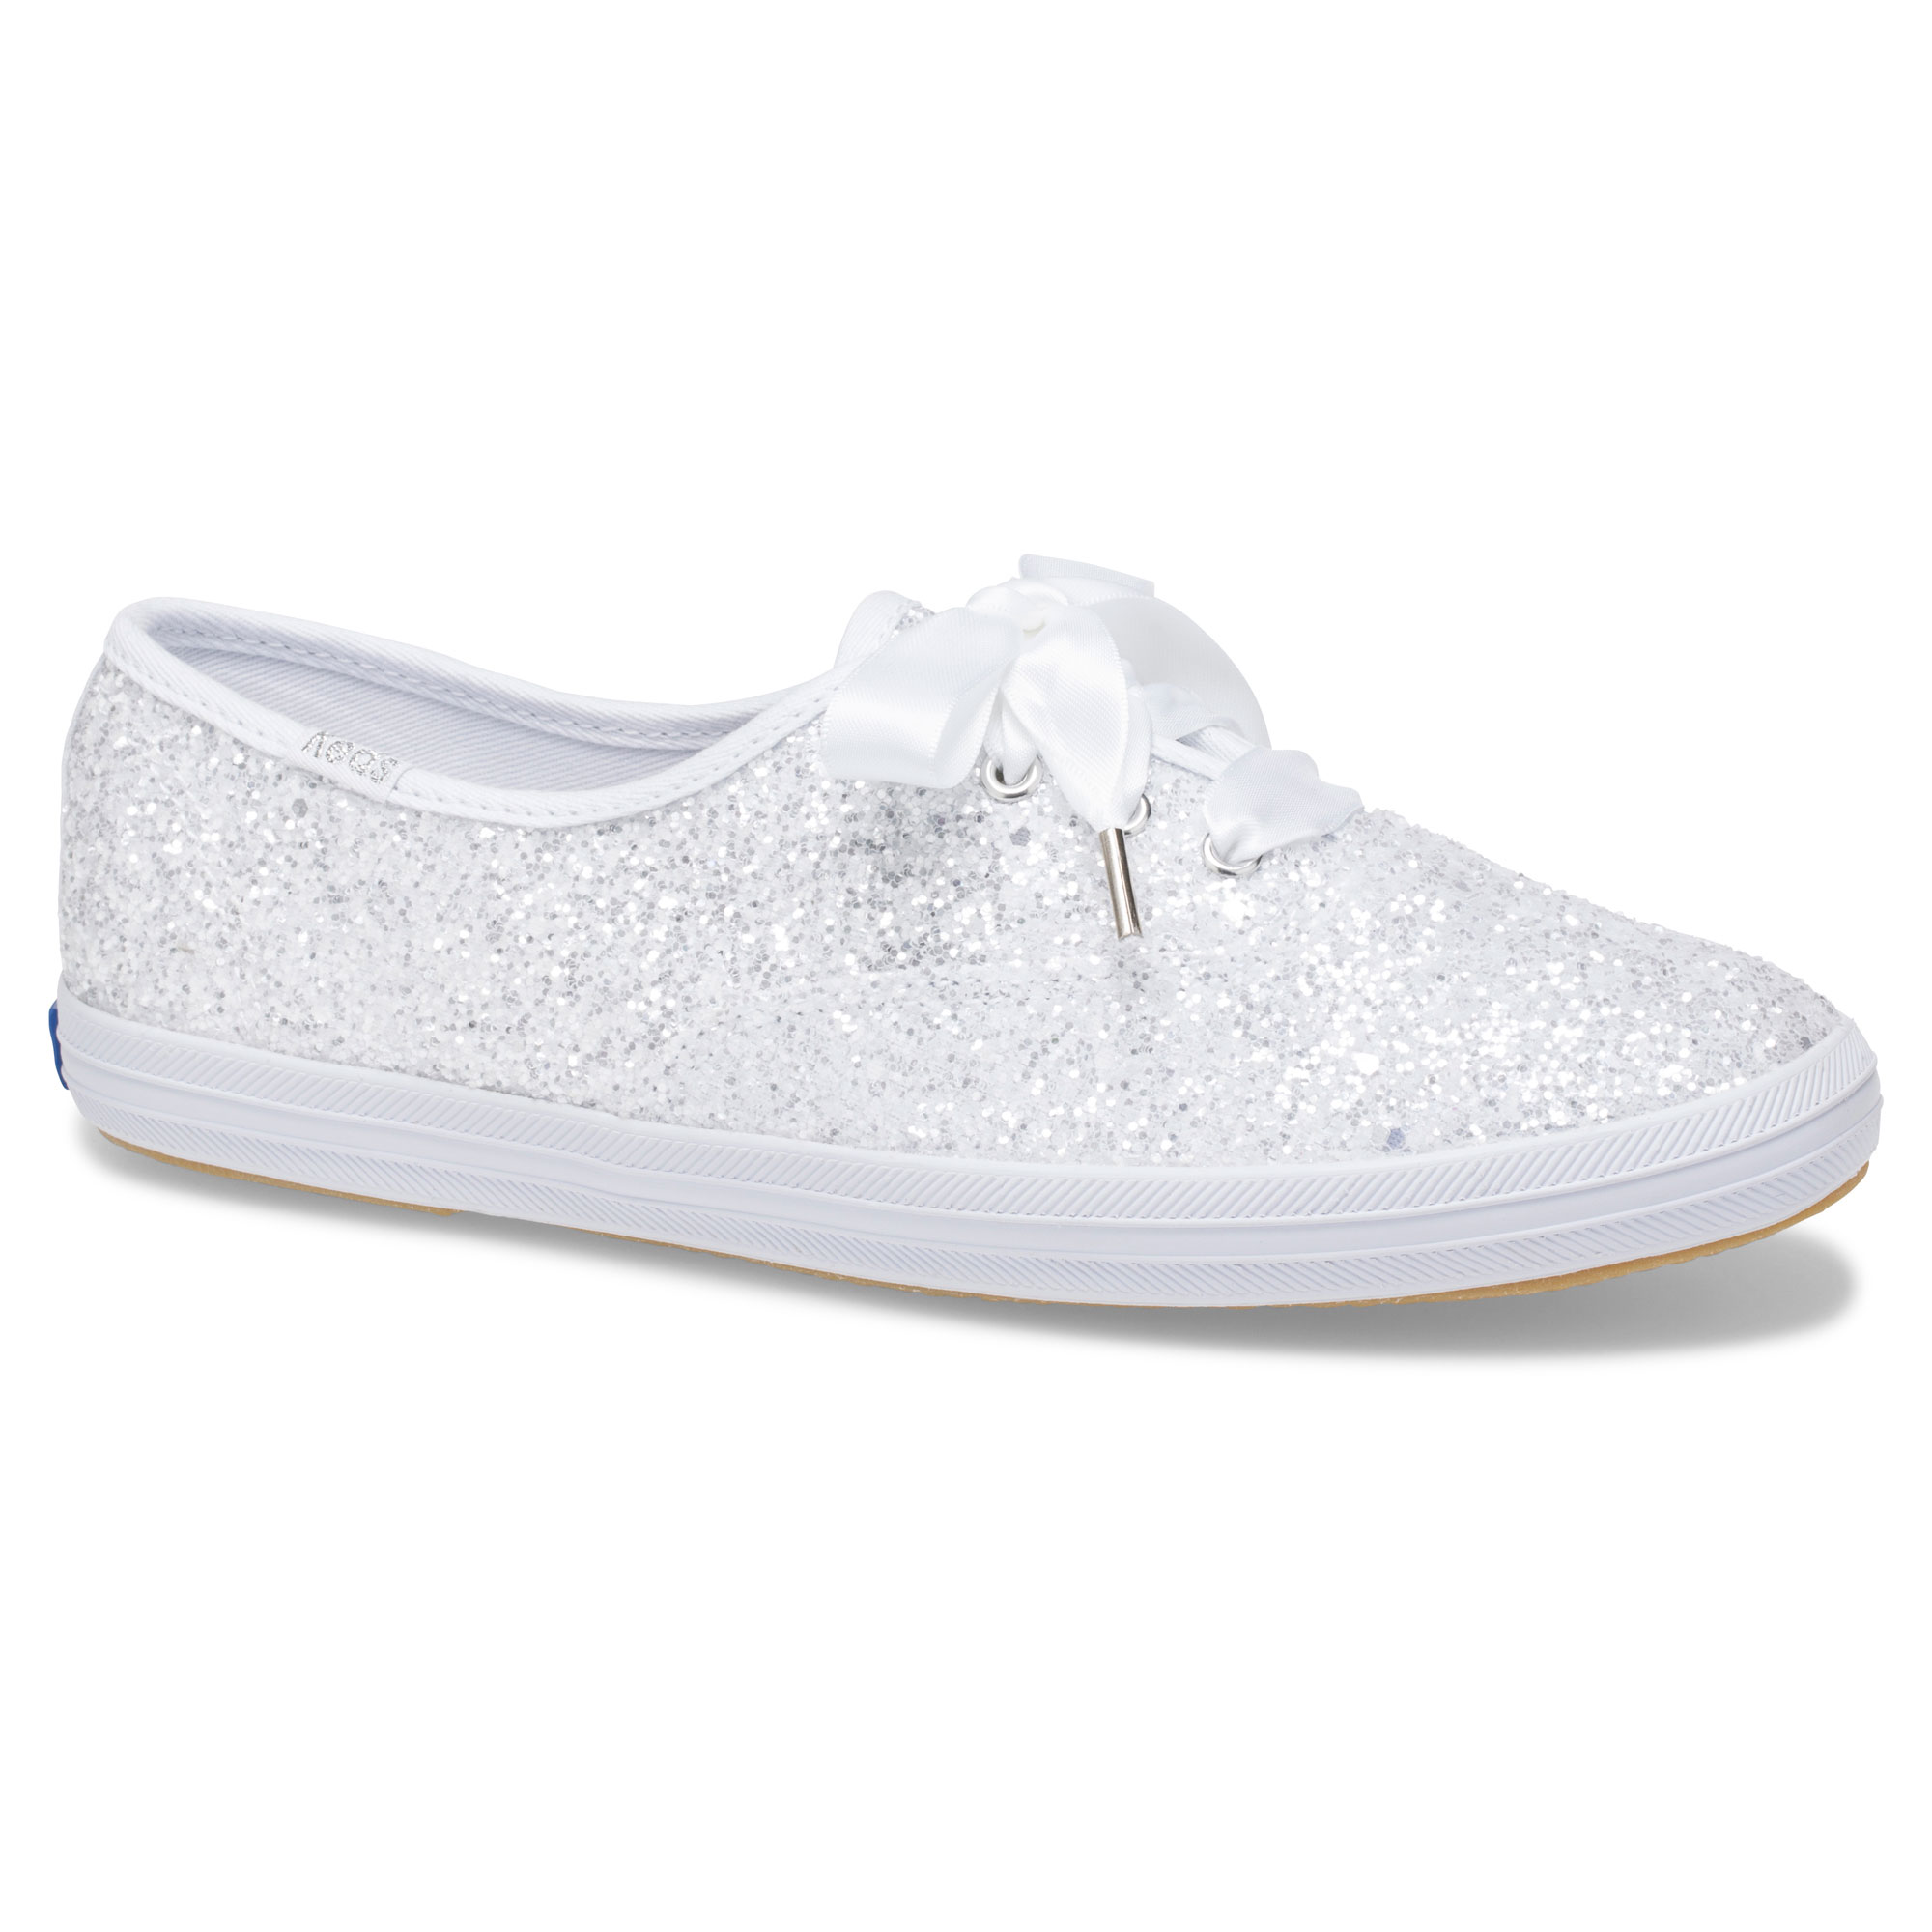 ee1a8f8f1e4 Keds x Kate Spade New York Spring 2019 Bridal Sneakers  Shop